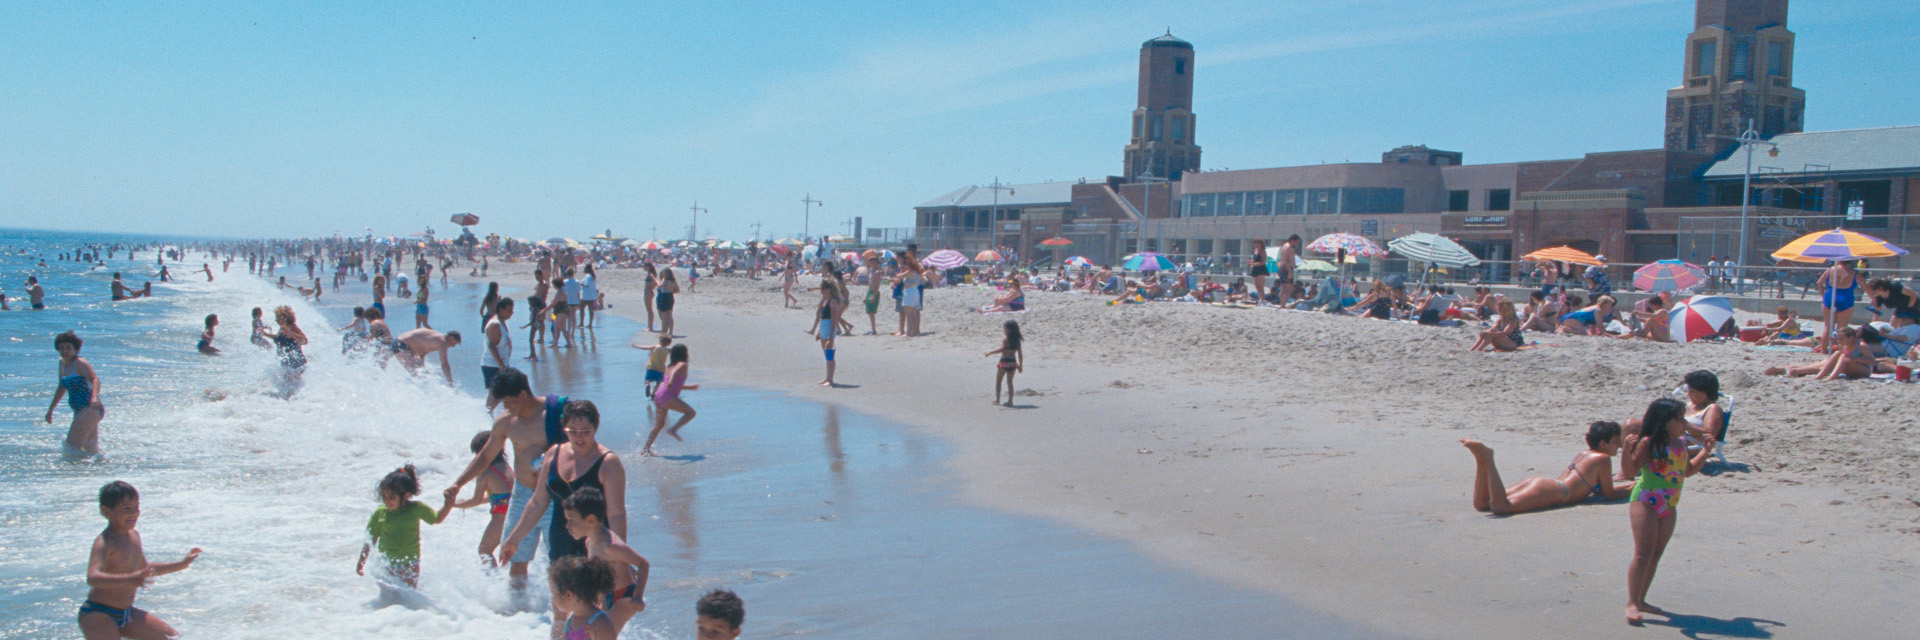 Riis Park - beach with people